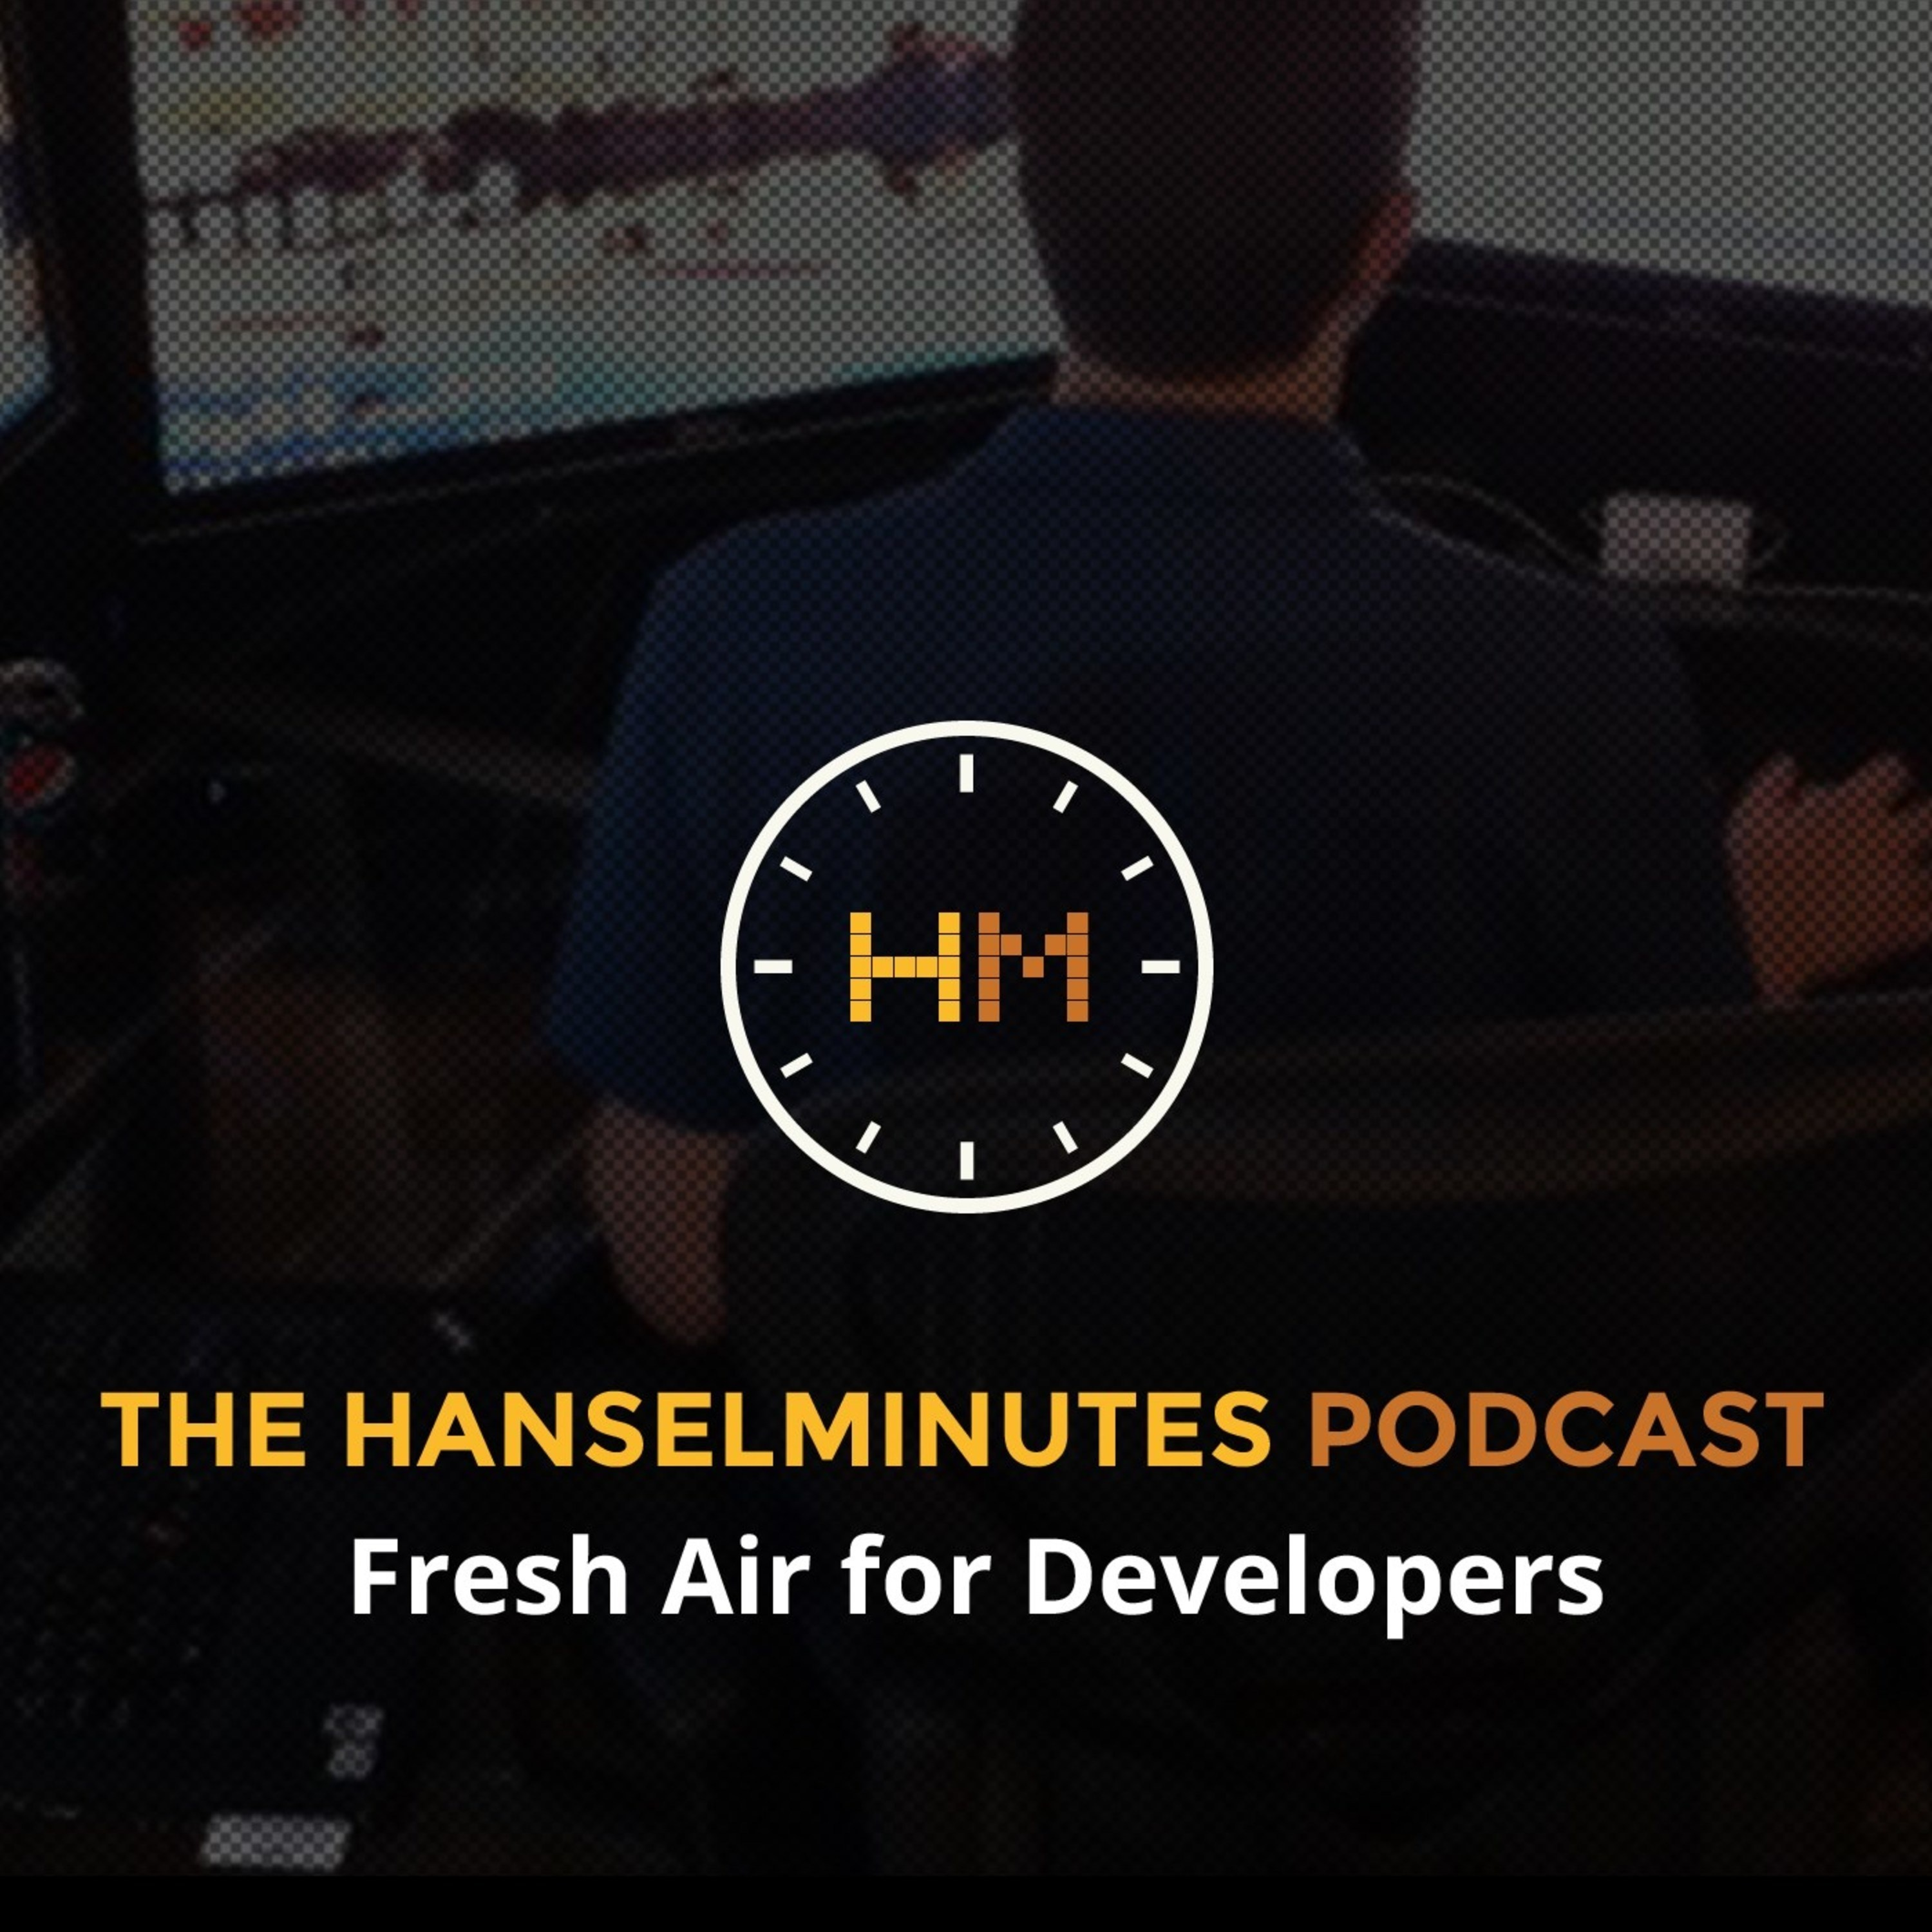 Hanselminutes - Fresh Talk and Tech for Developers